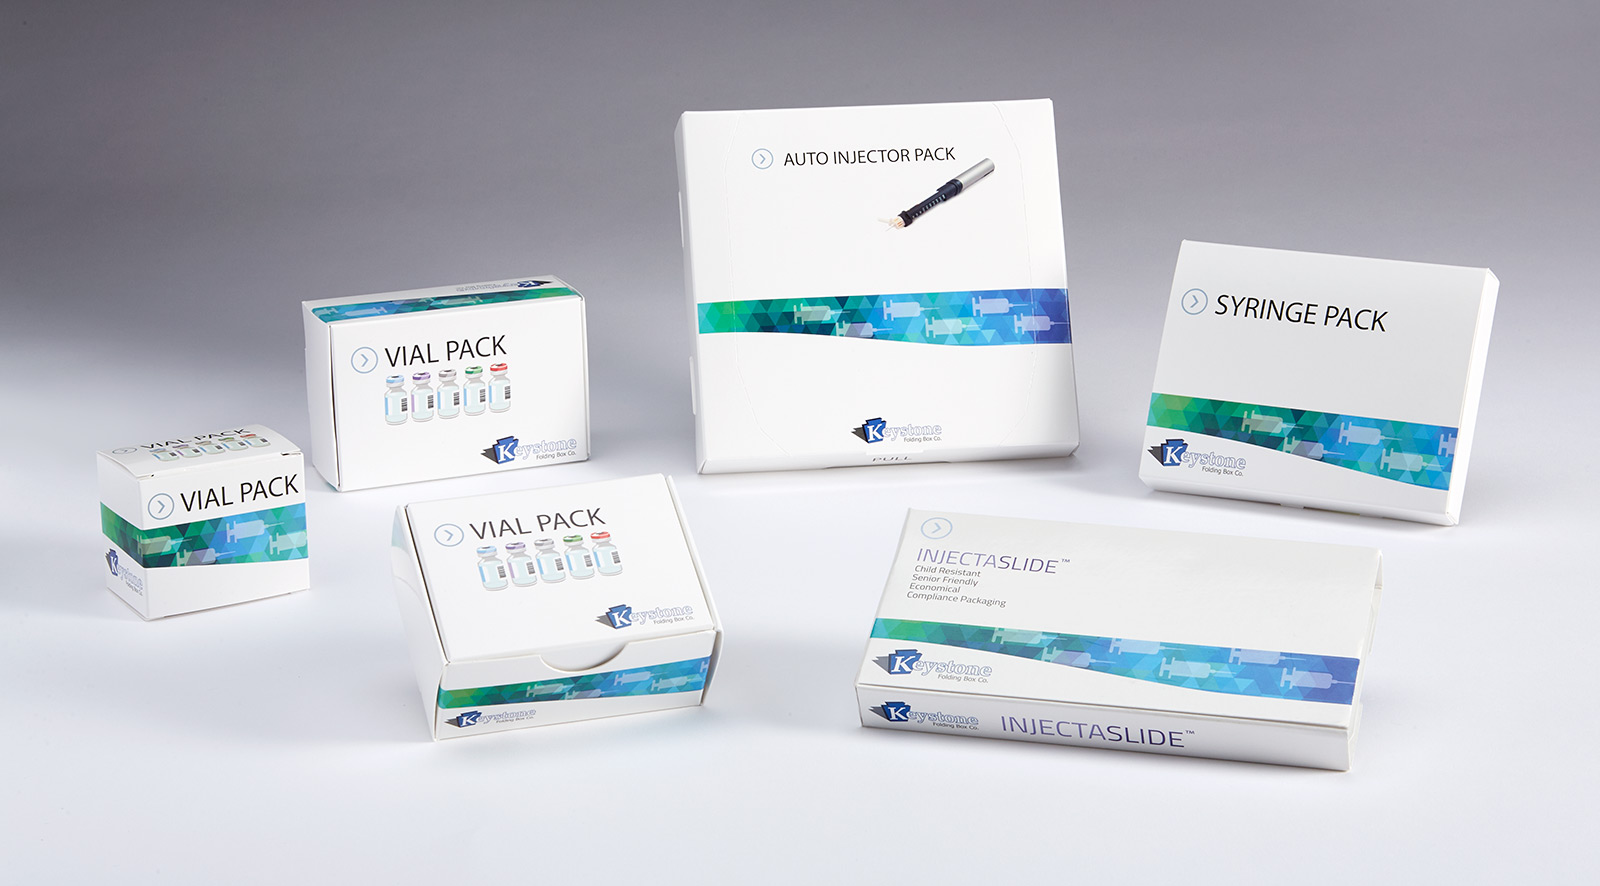 Injectable Packaging Products For Clinical Use Keystone